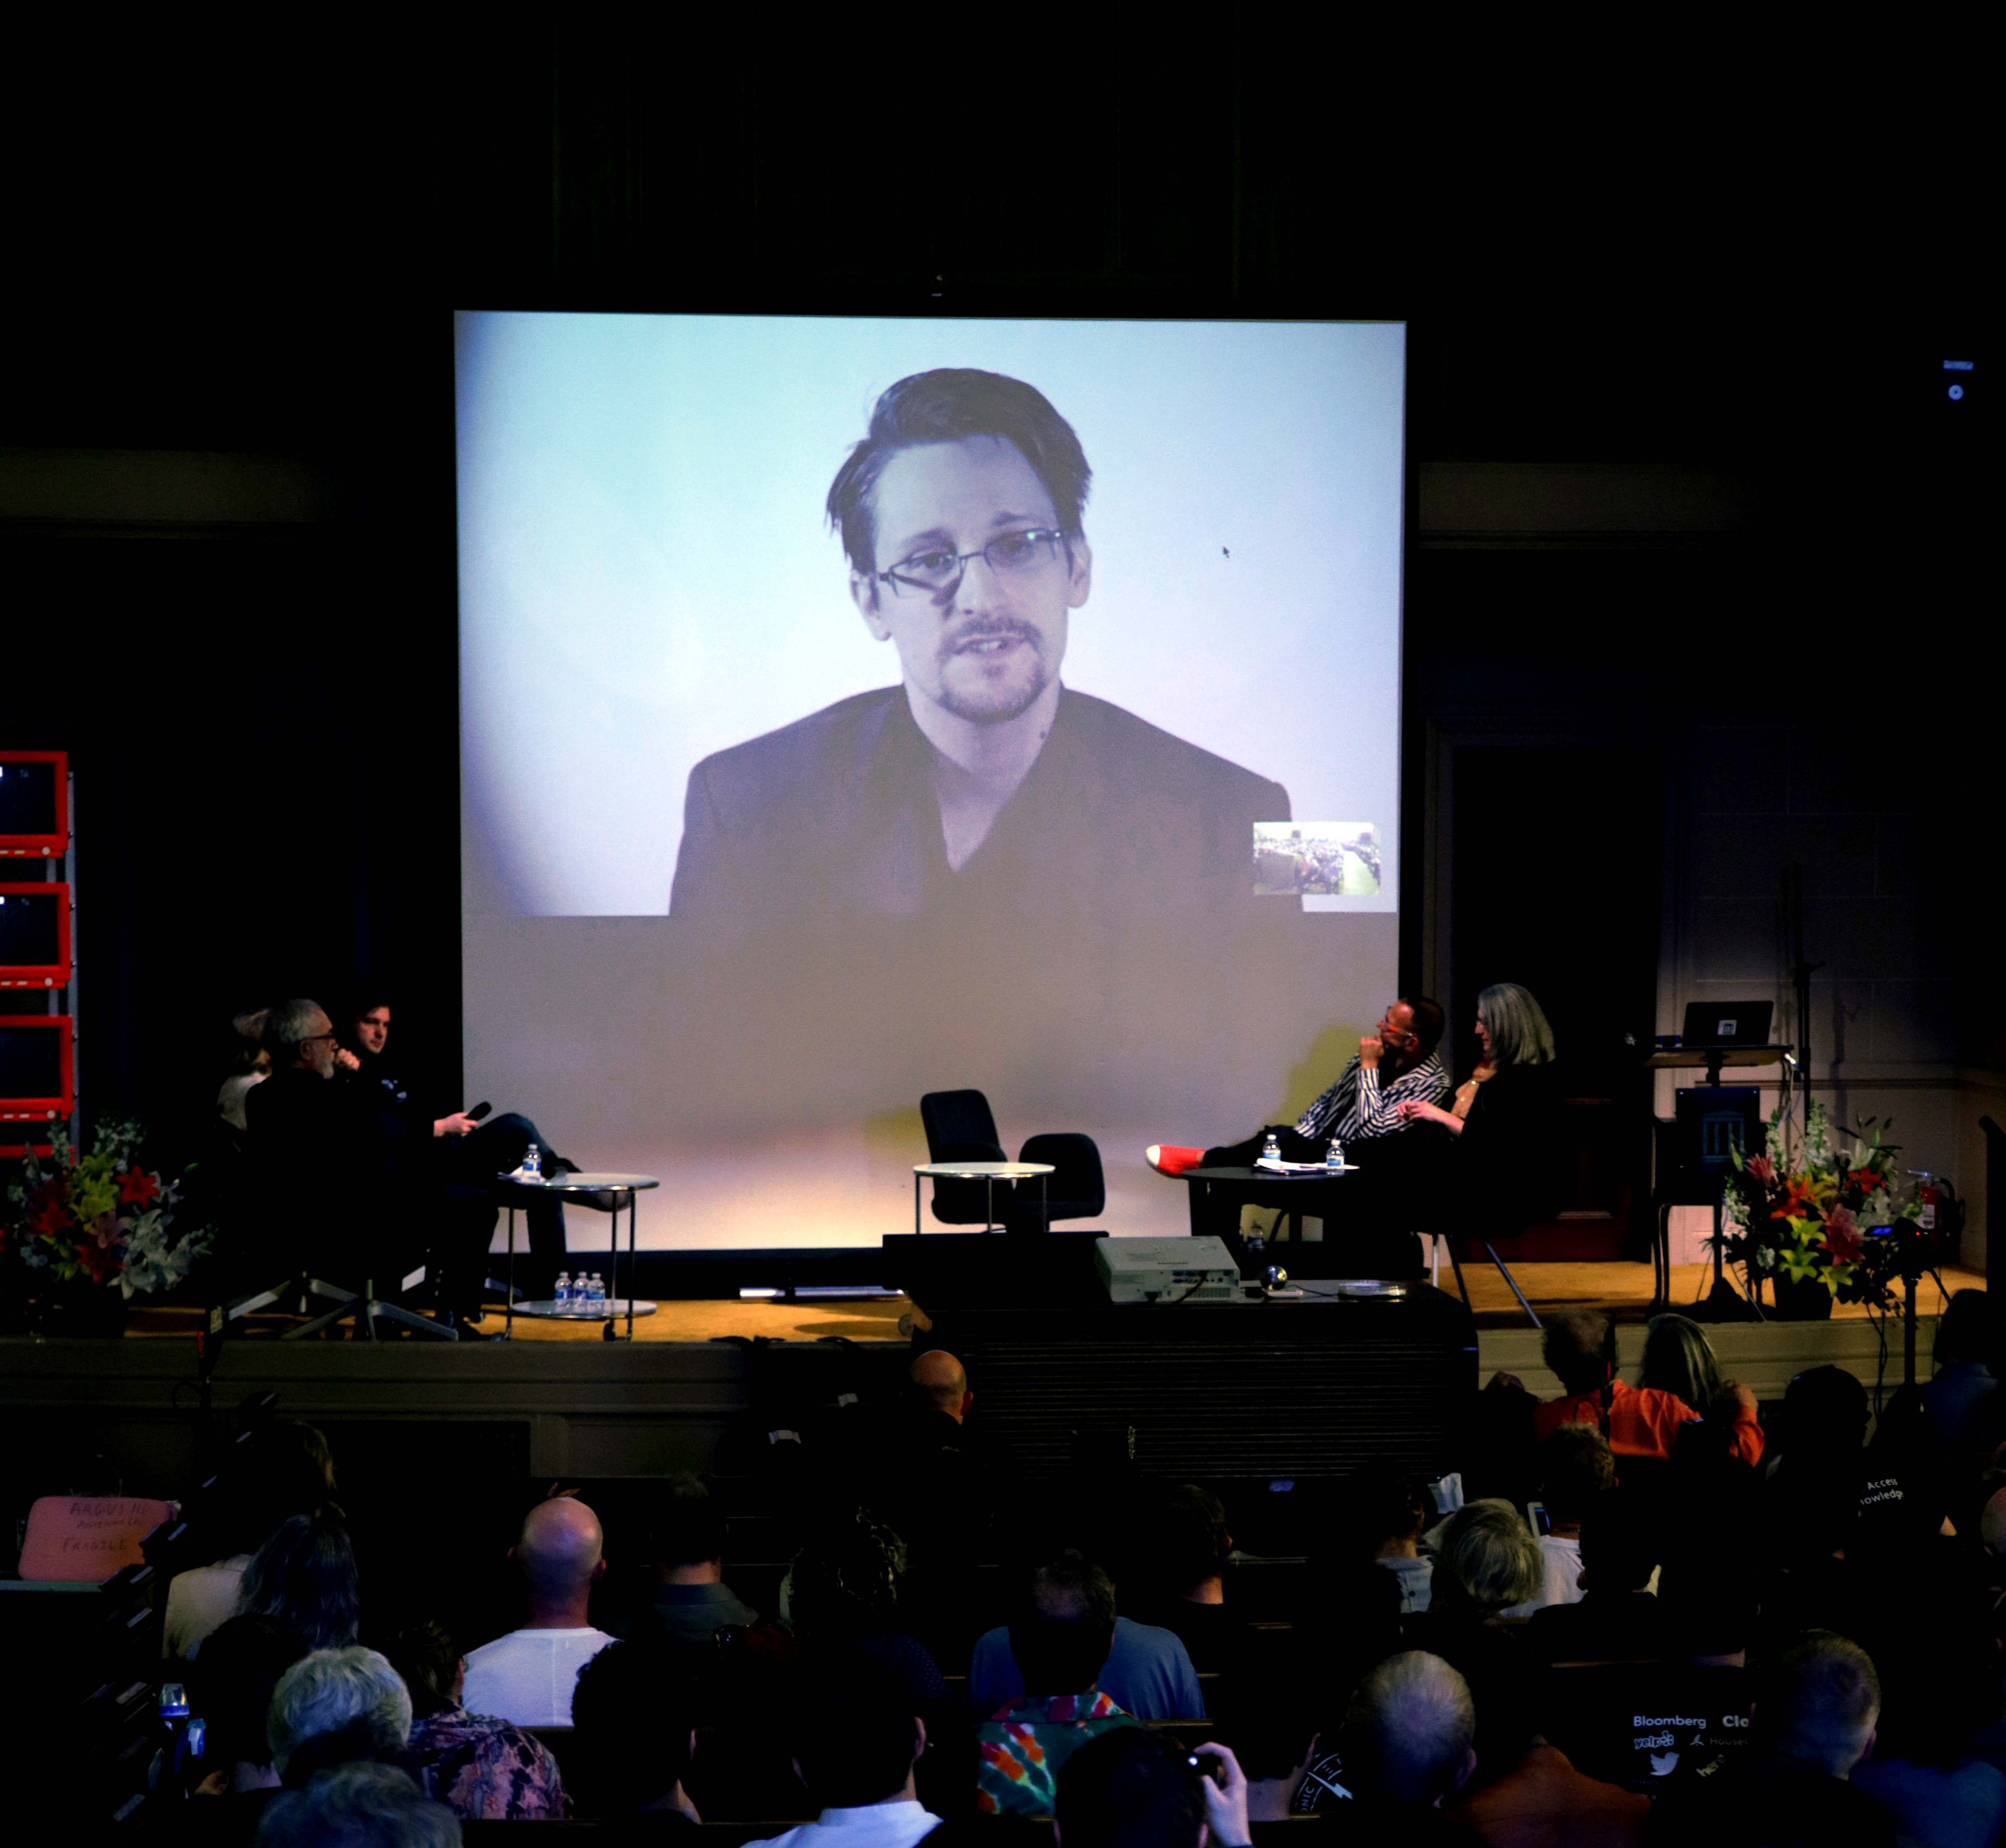 Whistleblower Edward Snowden addresses the audience.